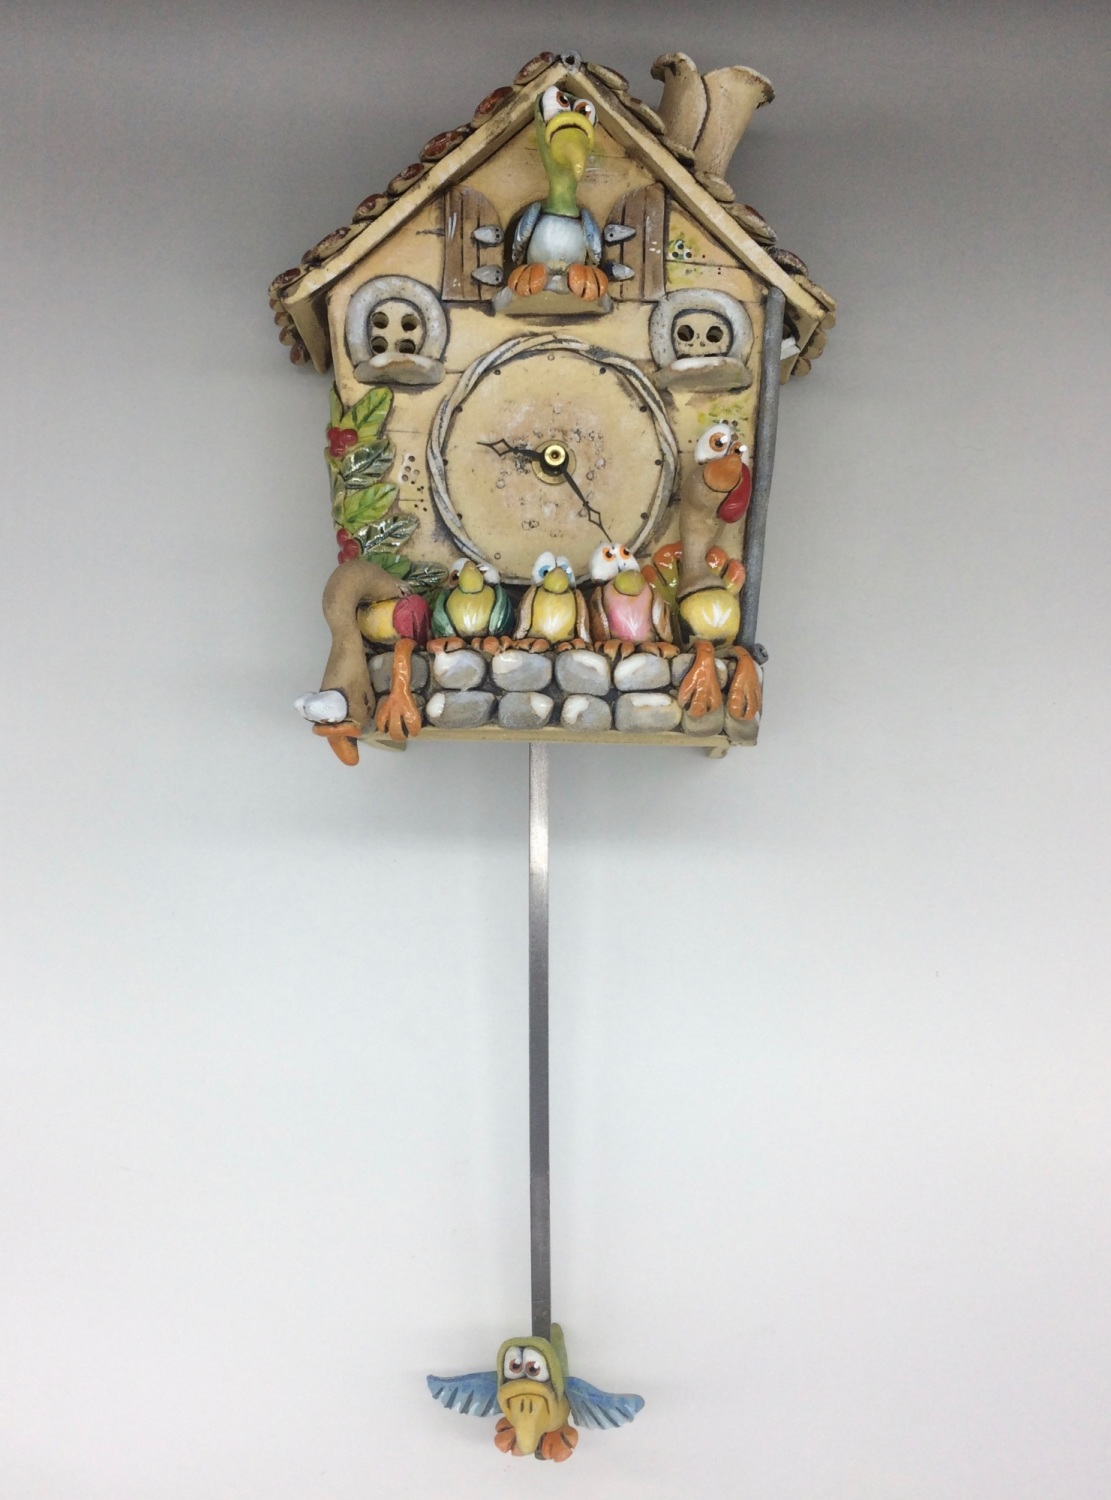 Cuckoo Wall Clock with Pendulum